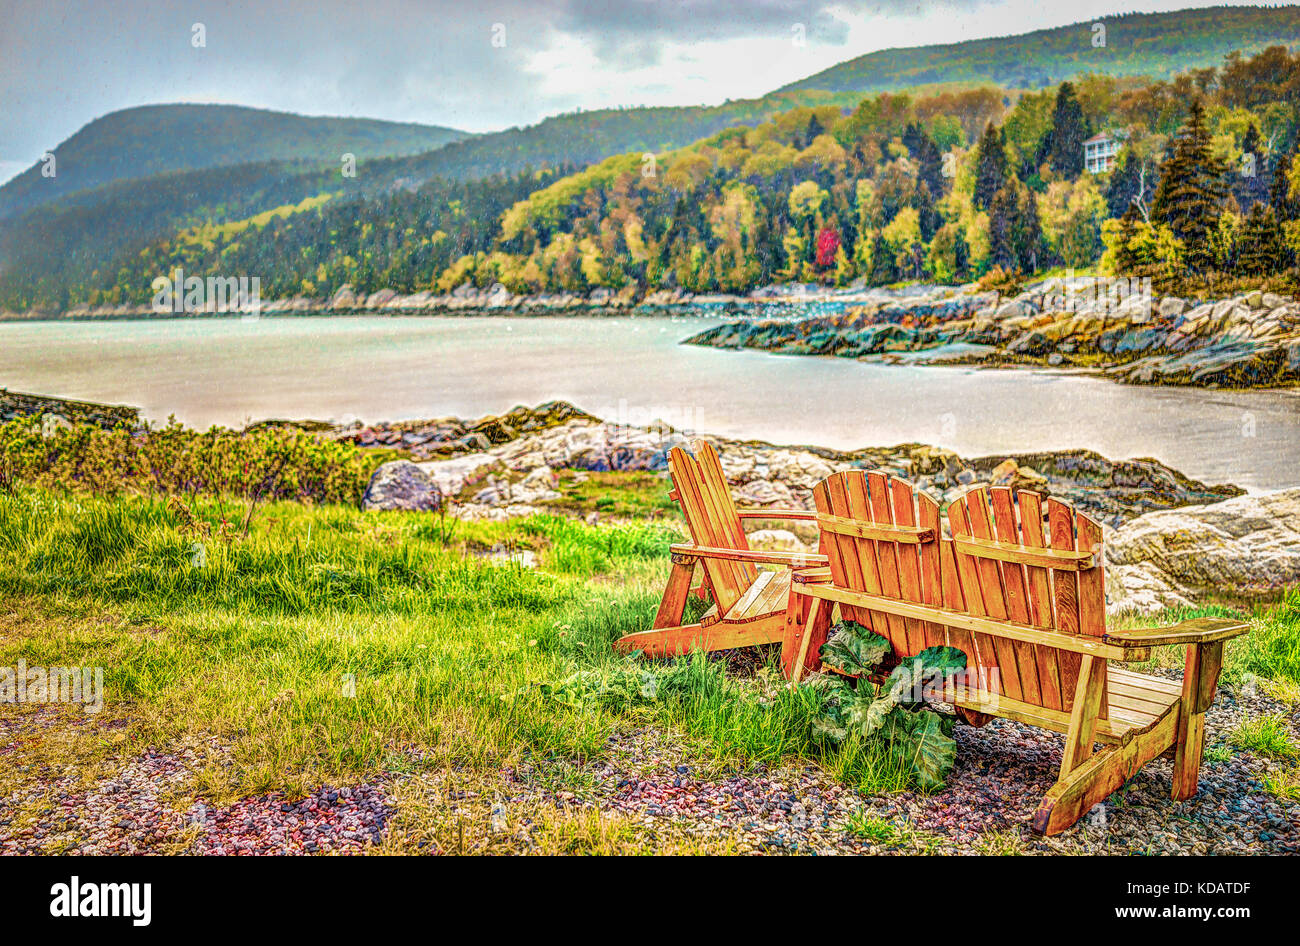 Port-au-Persil beach in Quebec, Canada Charlevoix region during stormy rainy day with Saint Lawrence river and wooden - Stock Image